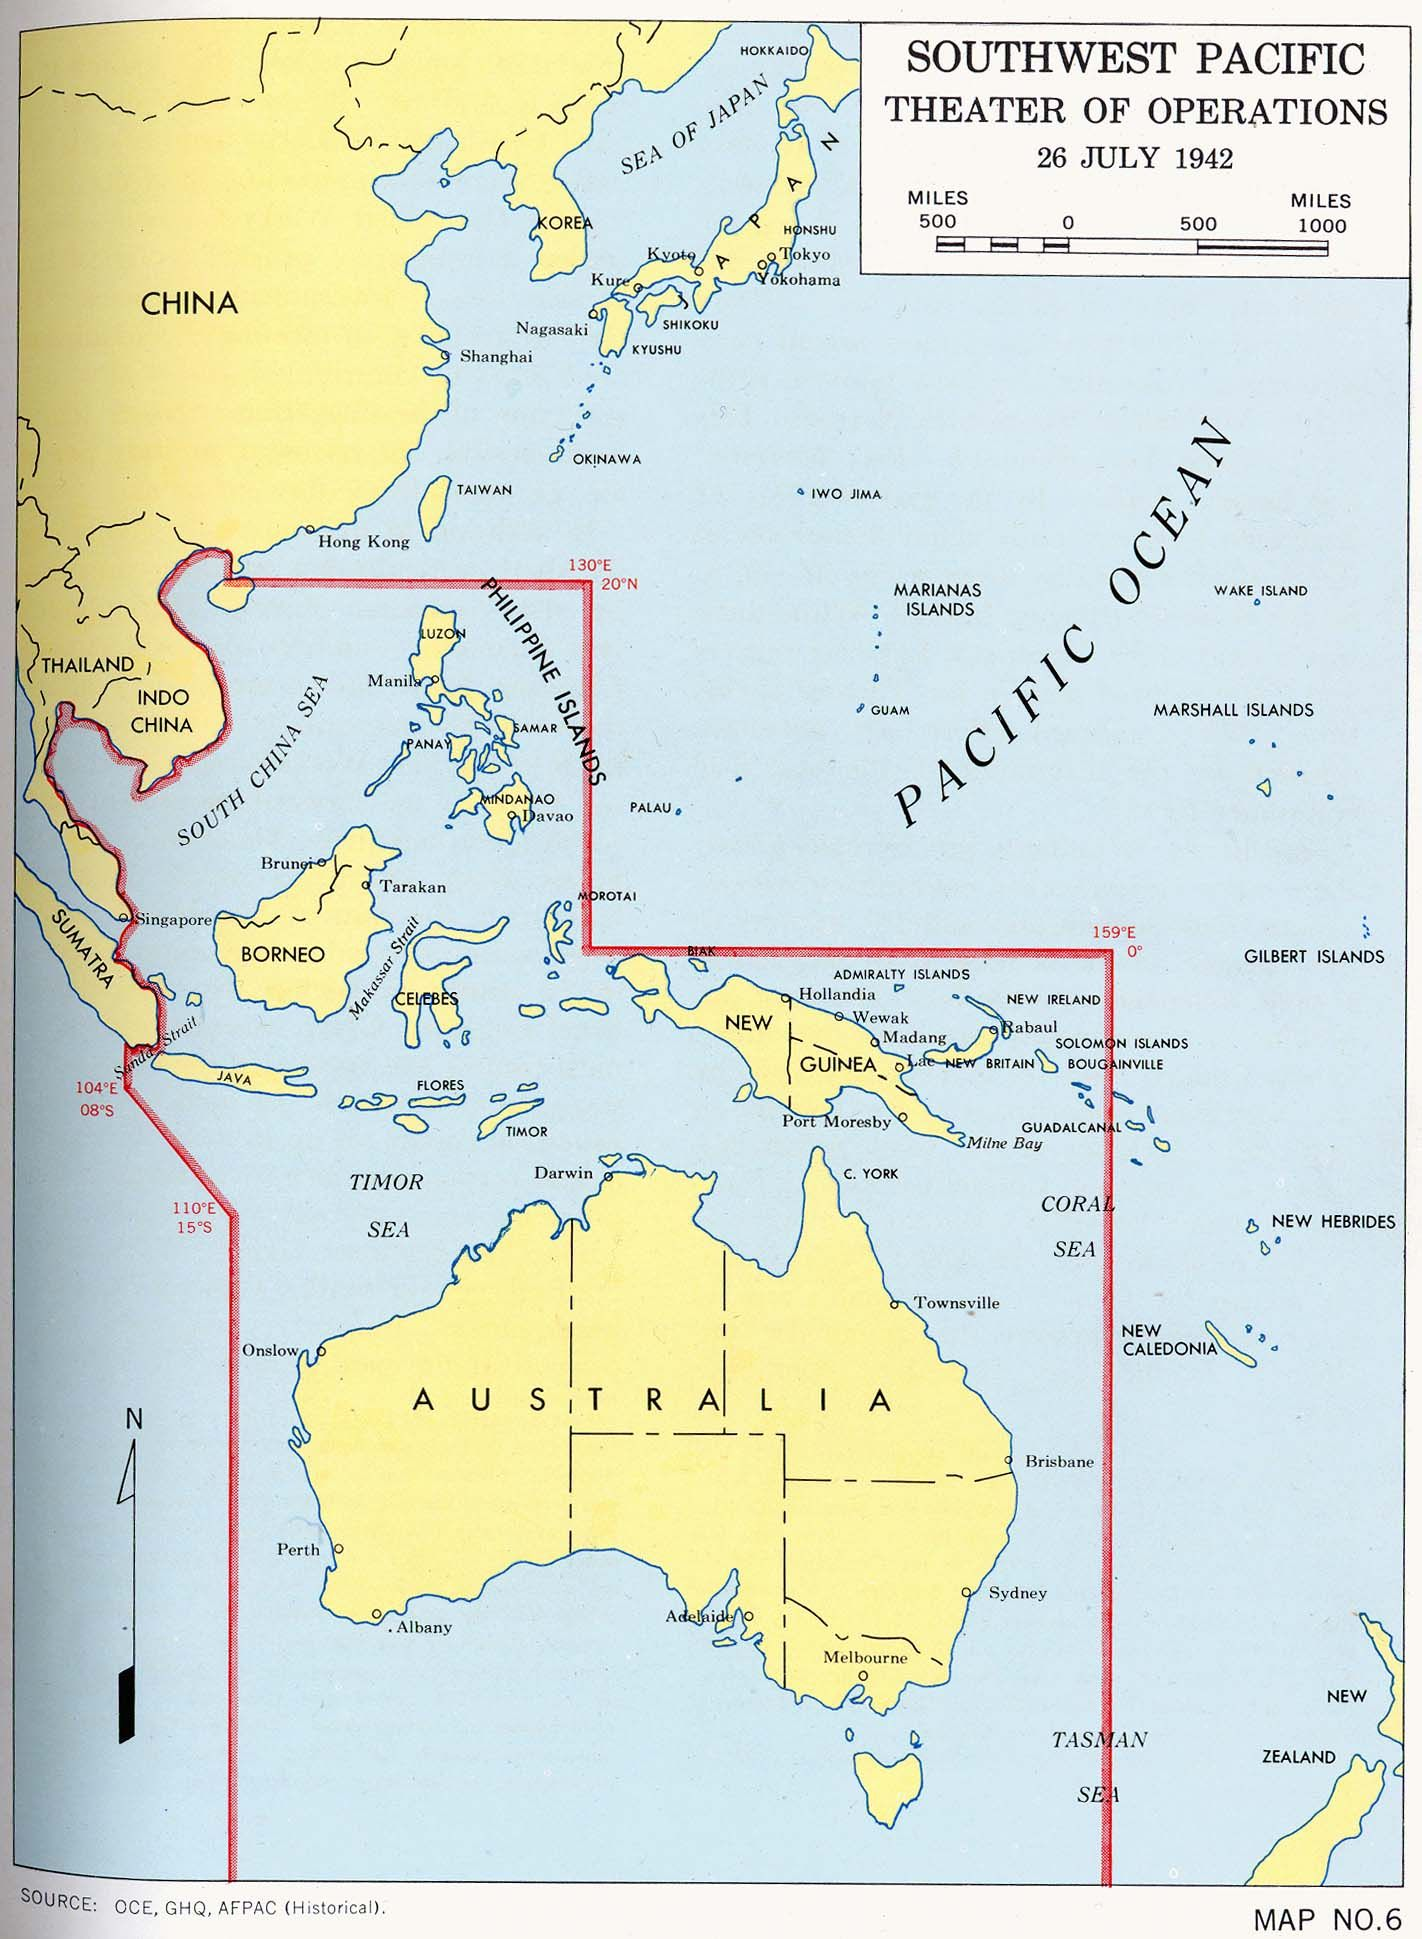 Pacific Theater Of Operations: Used As IV Fluid By Both British And  Japenese In WWII